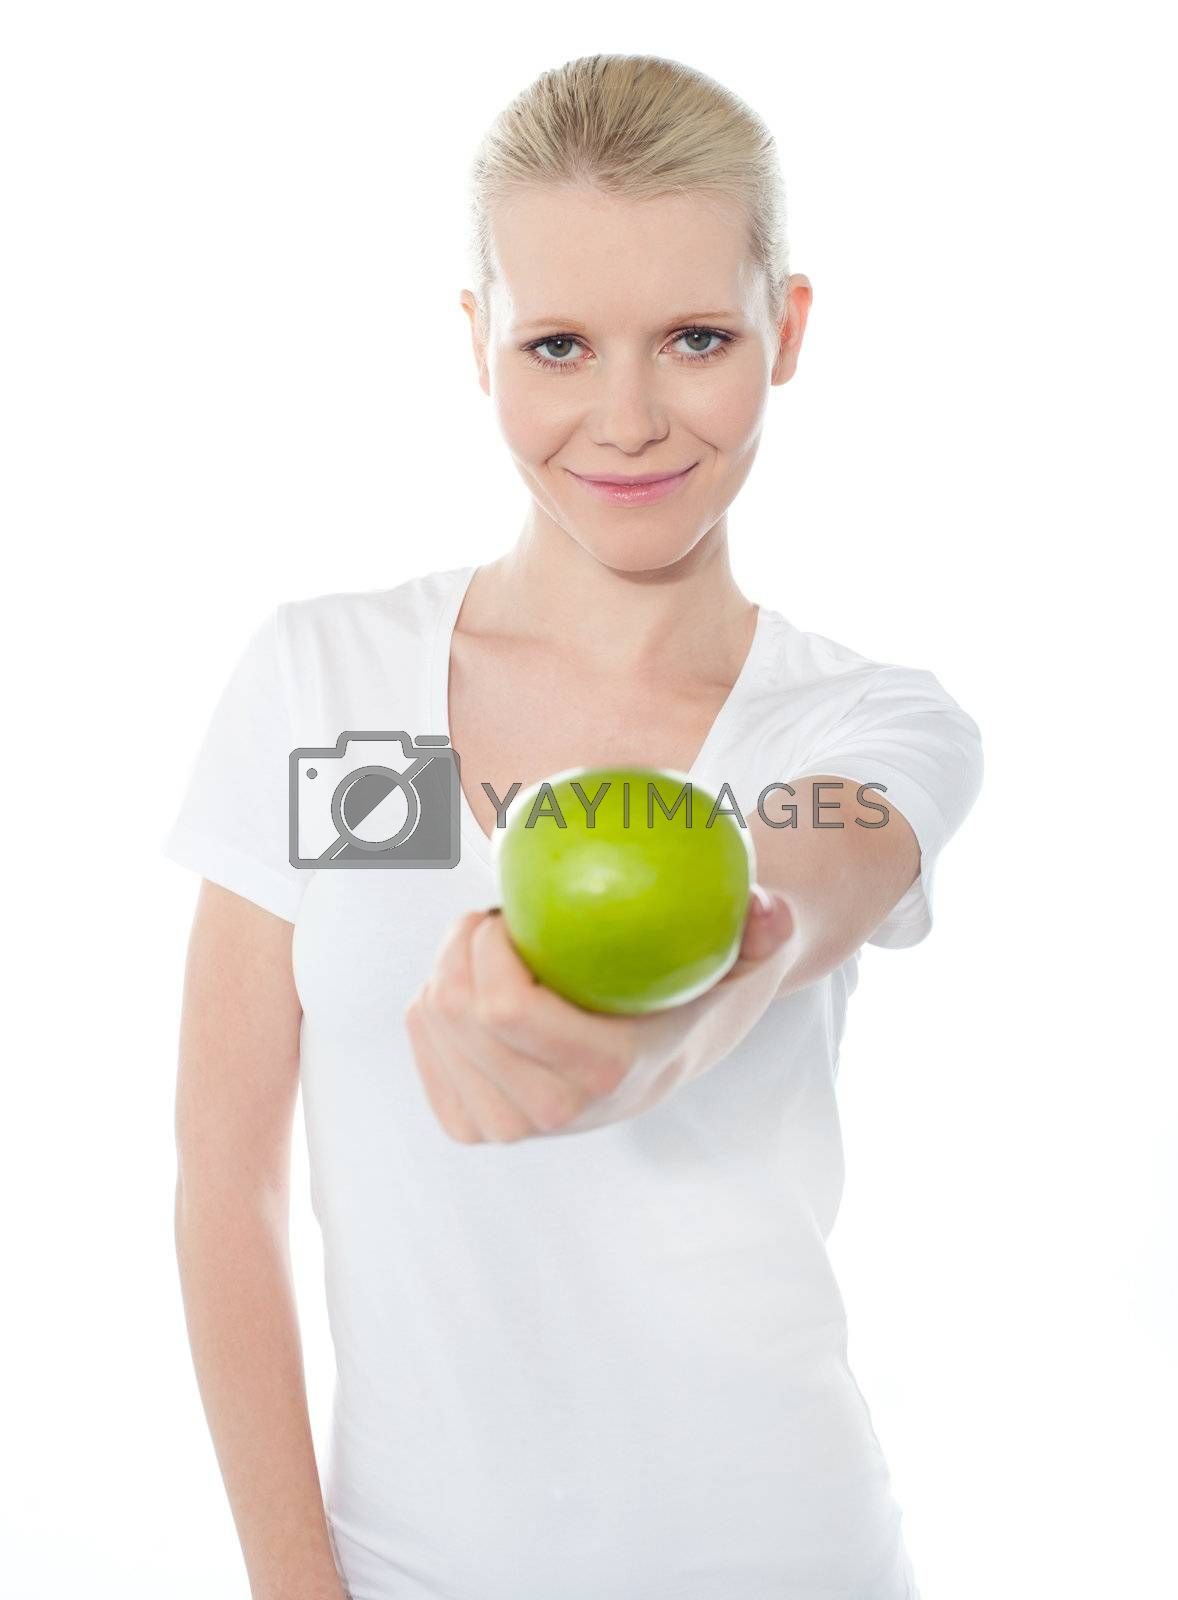 Cute teenager offering green apple dressed in white top